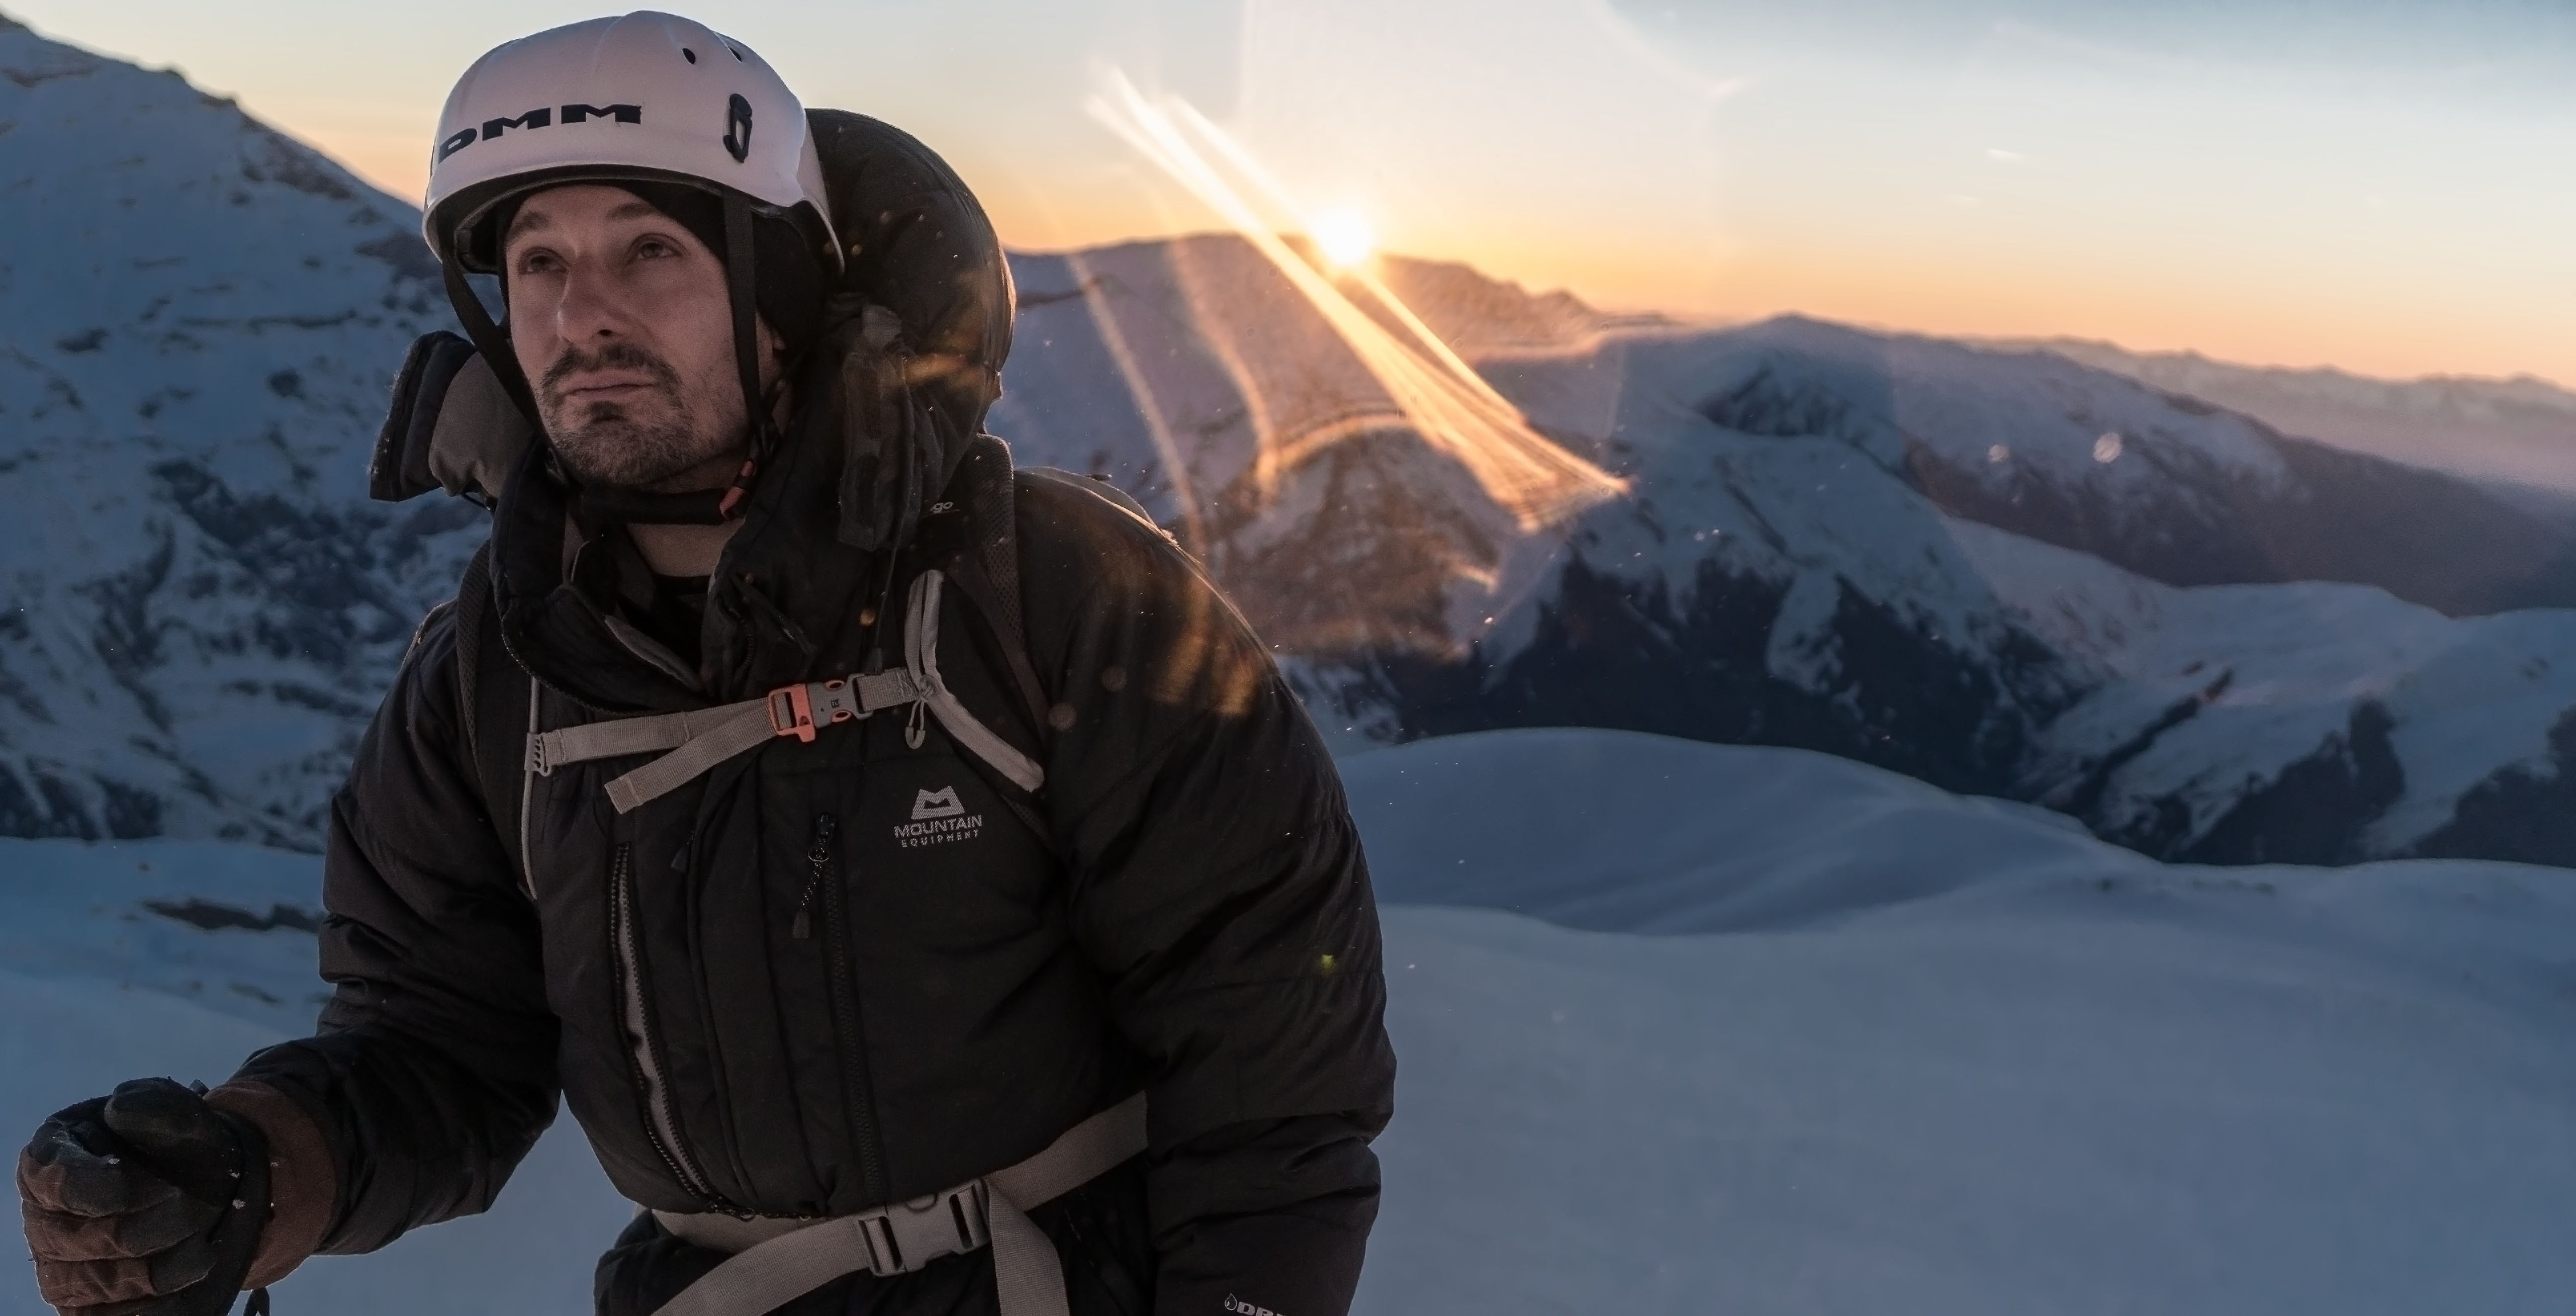 The day's first rays of light make it over the mountain tops to grace the backs of the expedition team members ascending to the summit of Mt. Halgurd